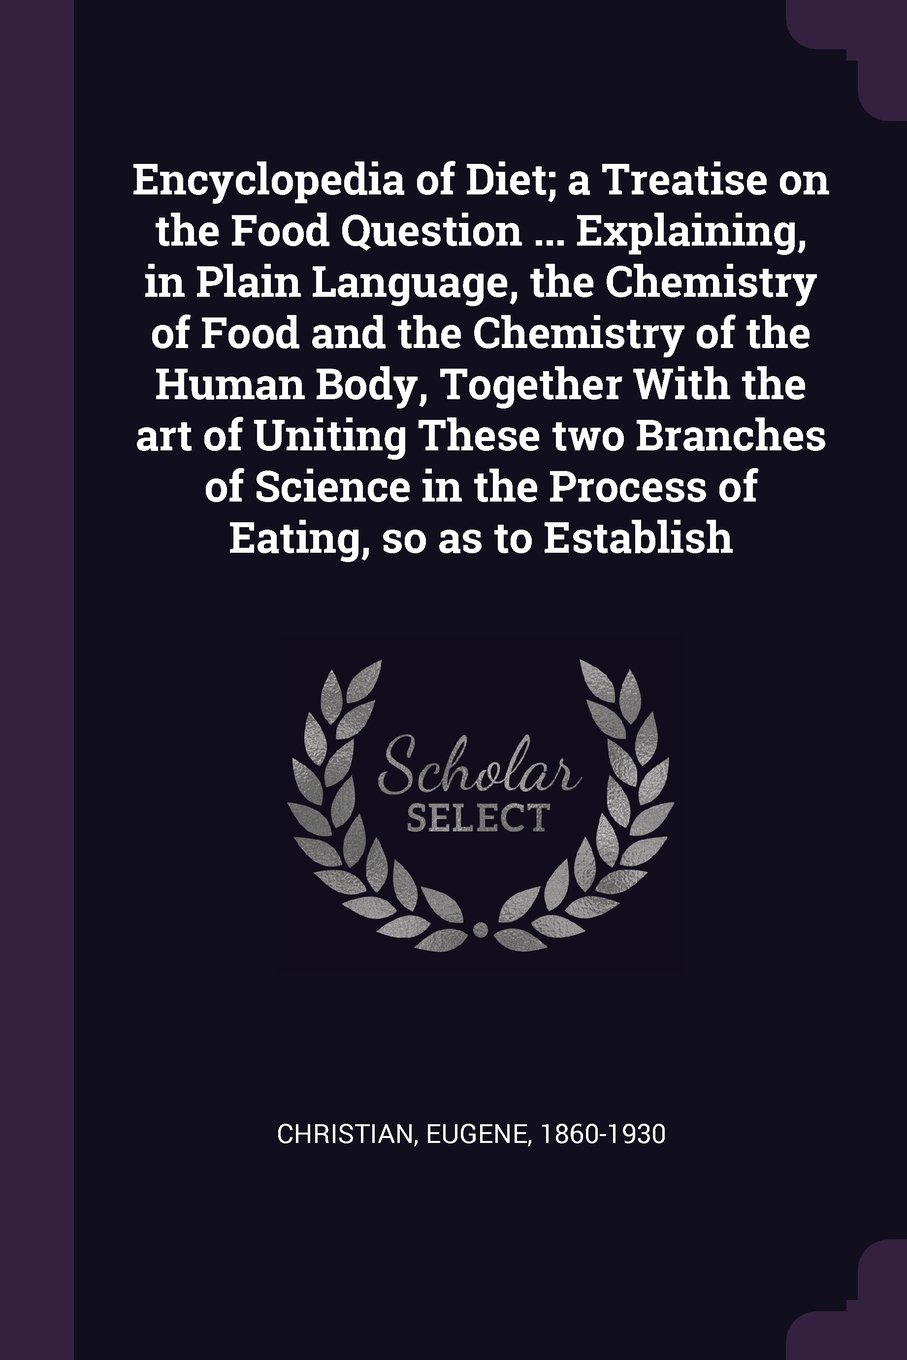 Encyclopedia of Diet; A Treatise on the Food Question ... Explaining, in Plain Language, the Chemistry of Food and the Chemistry of the Human Body, ... in the Process of Eating, So as to Establish ebook